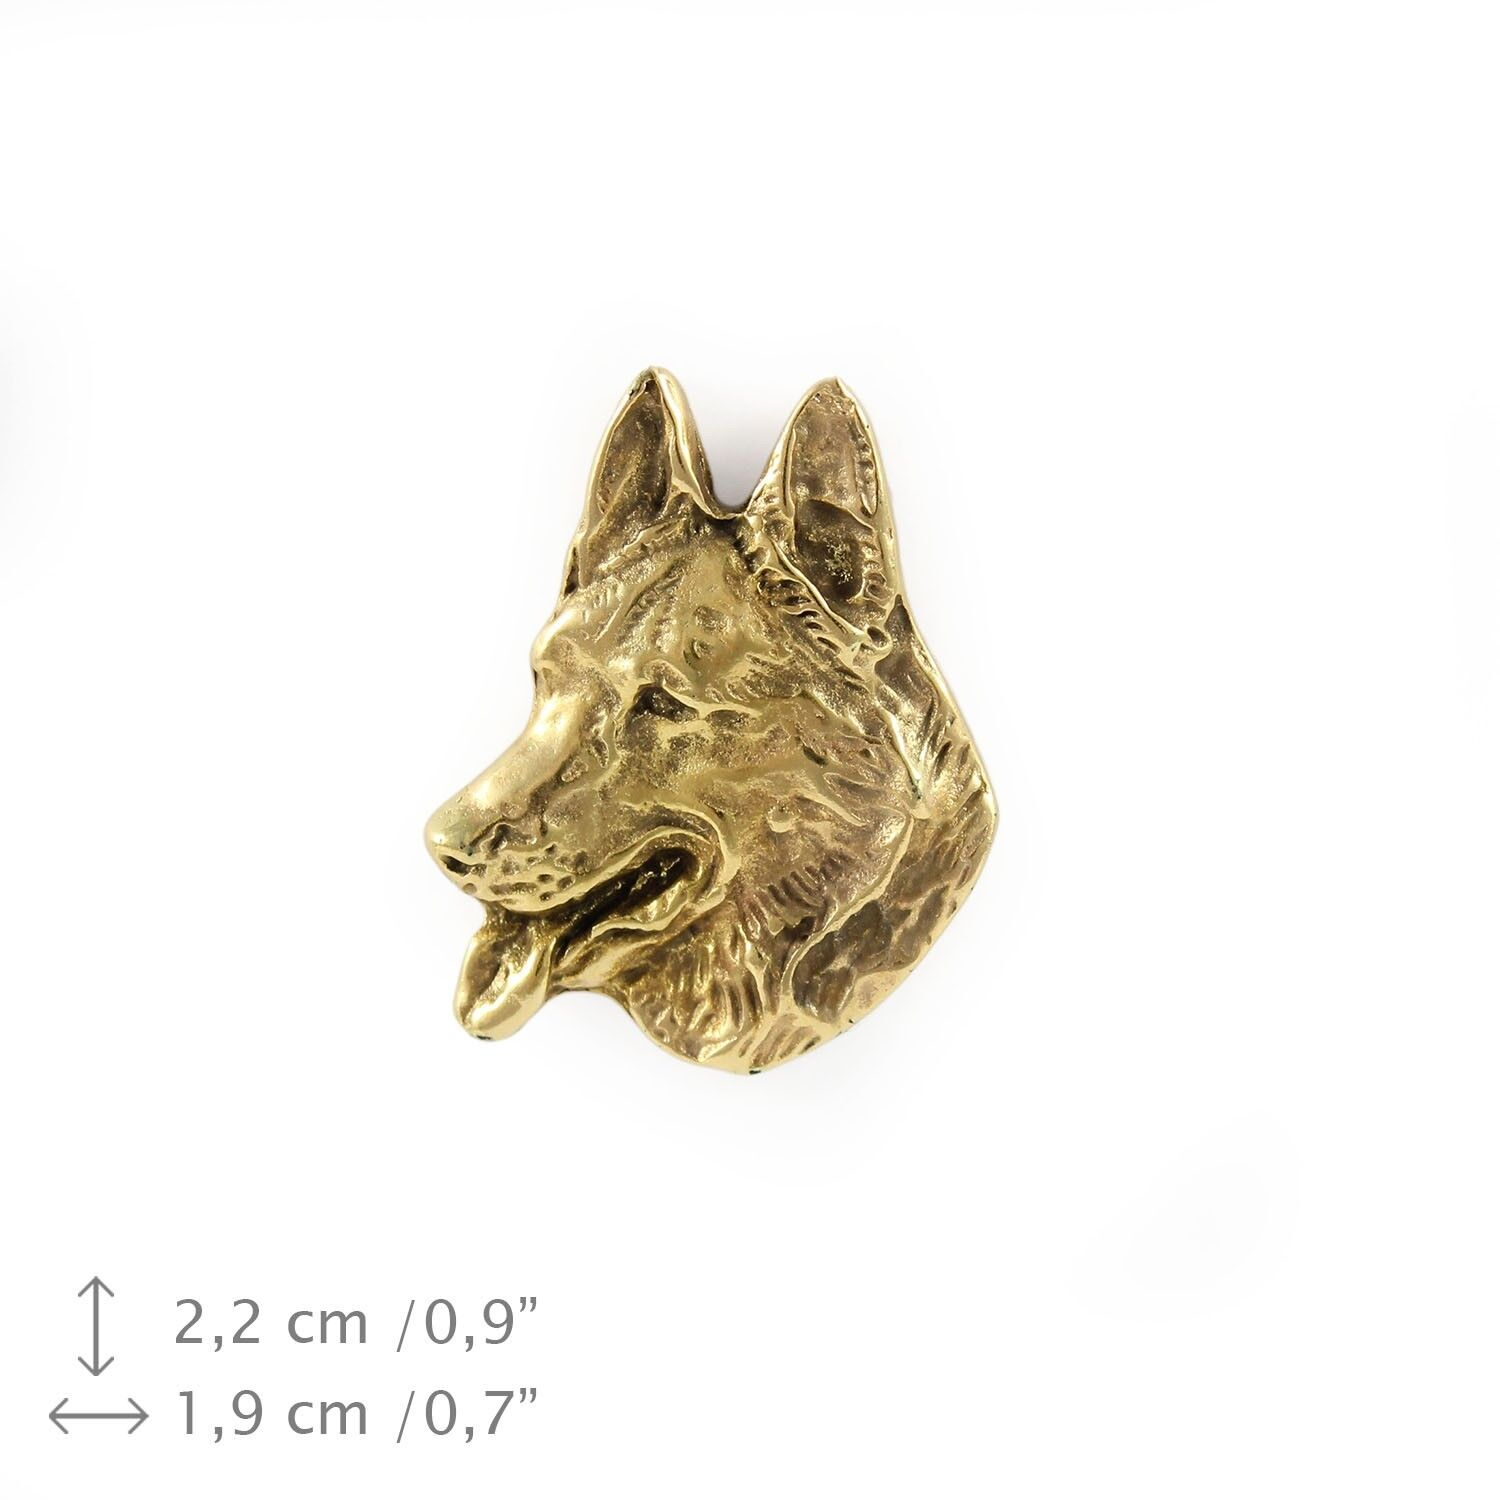 German Shepherd type 2 - dog, gold covered pin with dog, high quality, Art Dog